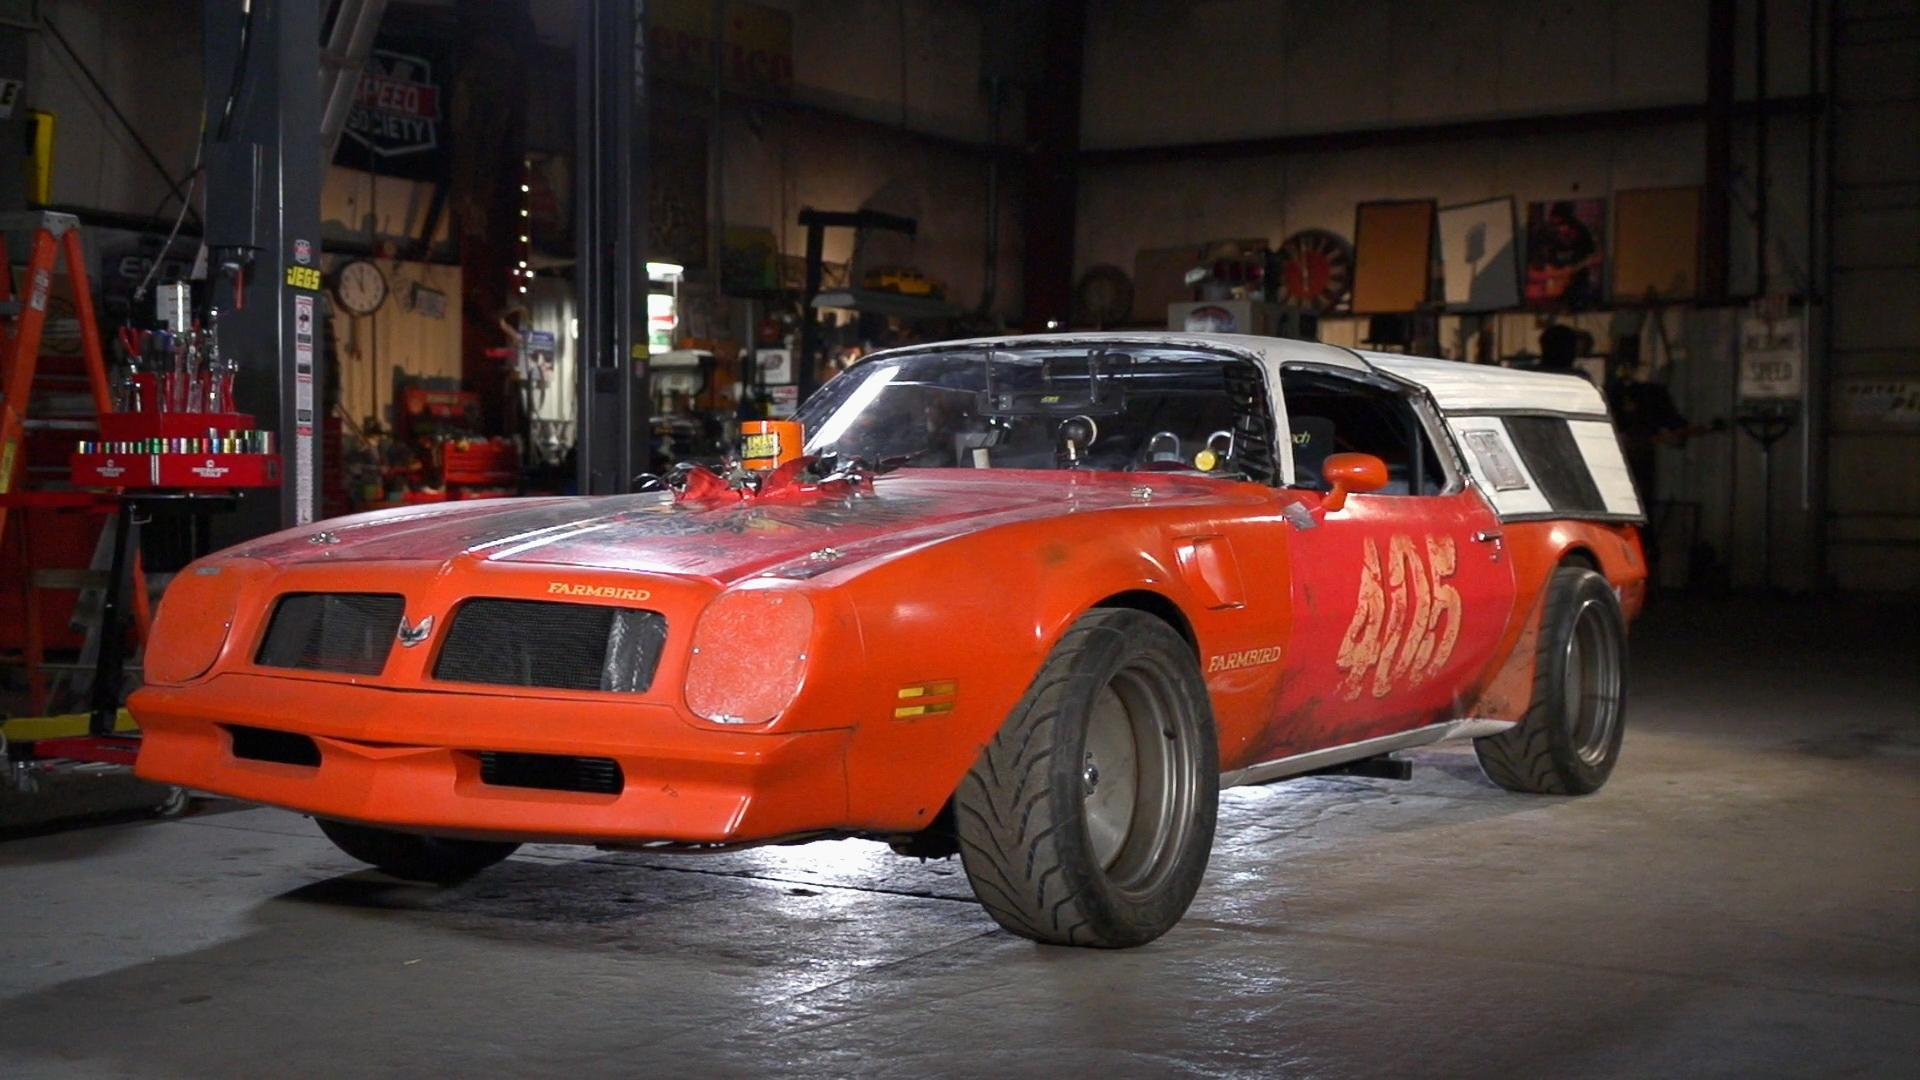 'Street Outlaws': This Pontiac Firebird Looks An Awful Lot Like The Farmtruck...